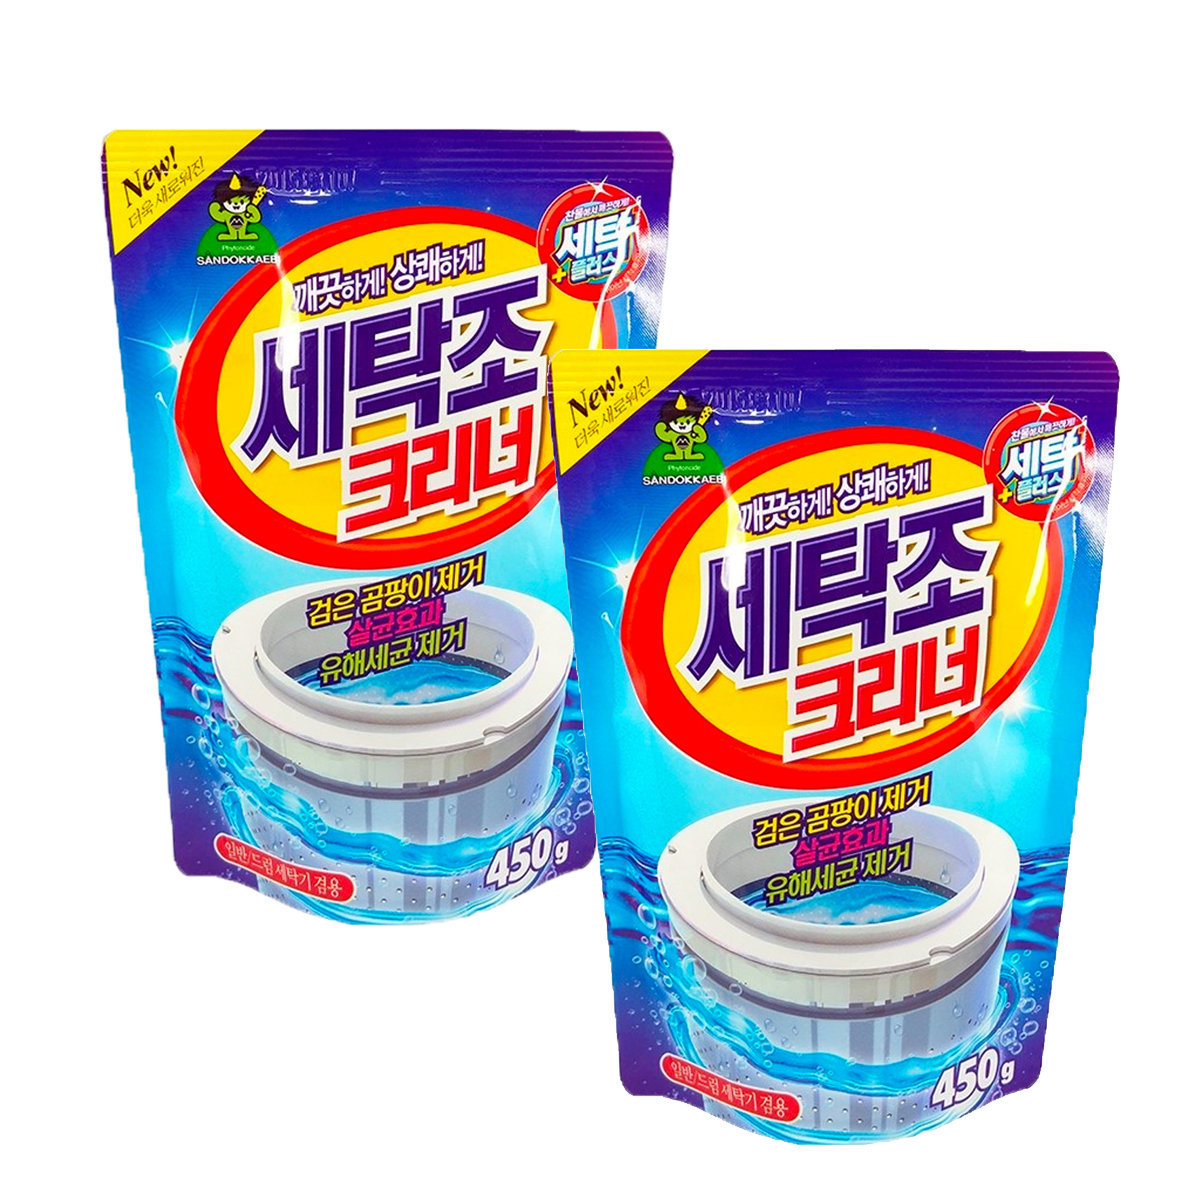 Washing Marchine Cleaner 450g x 2pack (8801353003807)